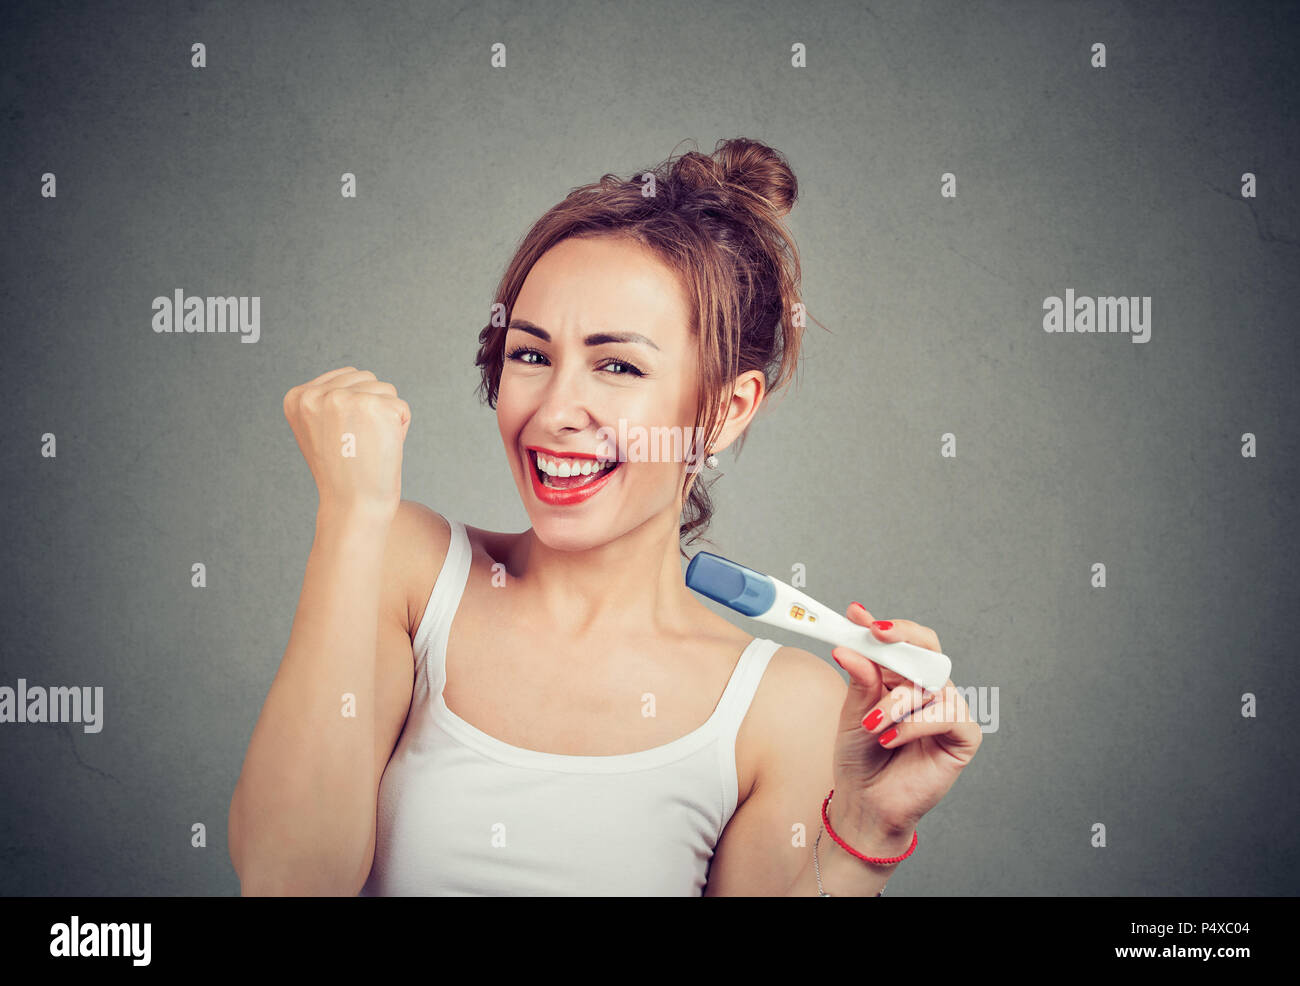 Happy young girl holding fits up and showing positive pregnancy test excited with great news on gray background - Stock Image